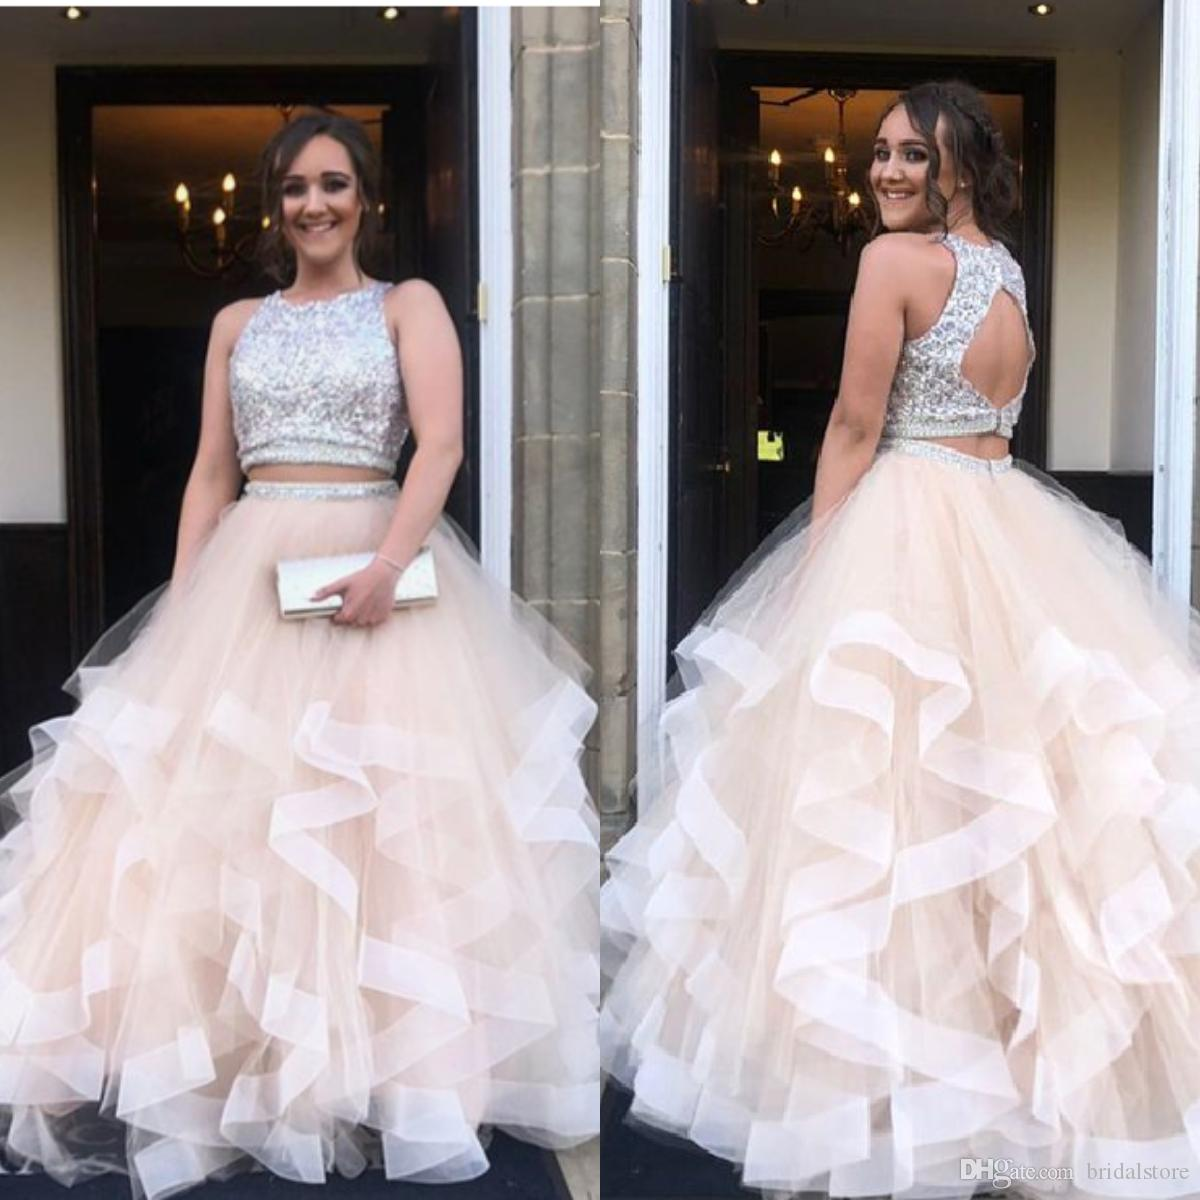 Elegant Champagne Two Piece Prom Dresses Sequins Top Hot Sale Tulle Tiered Formal Evening Open Back quinceanera dresses 2018 For Girls